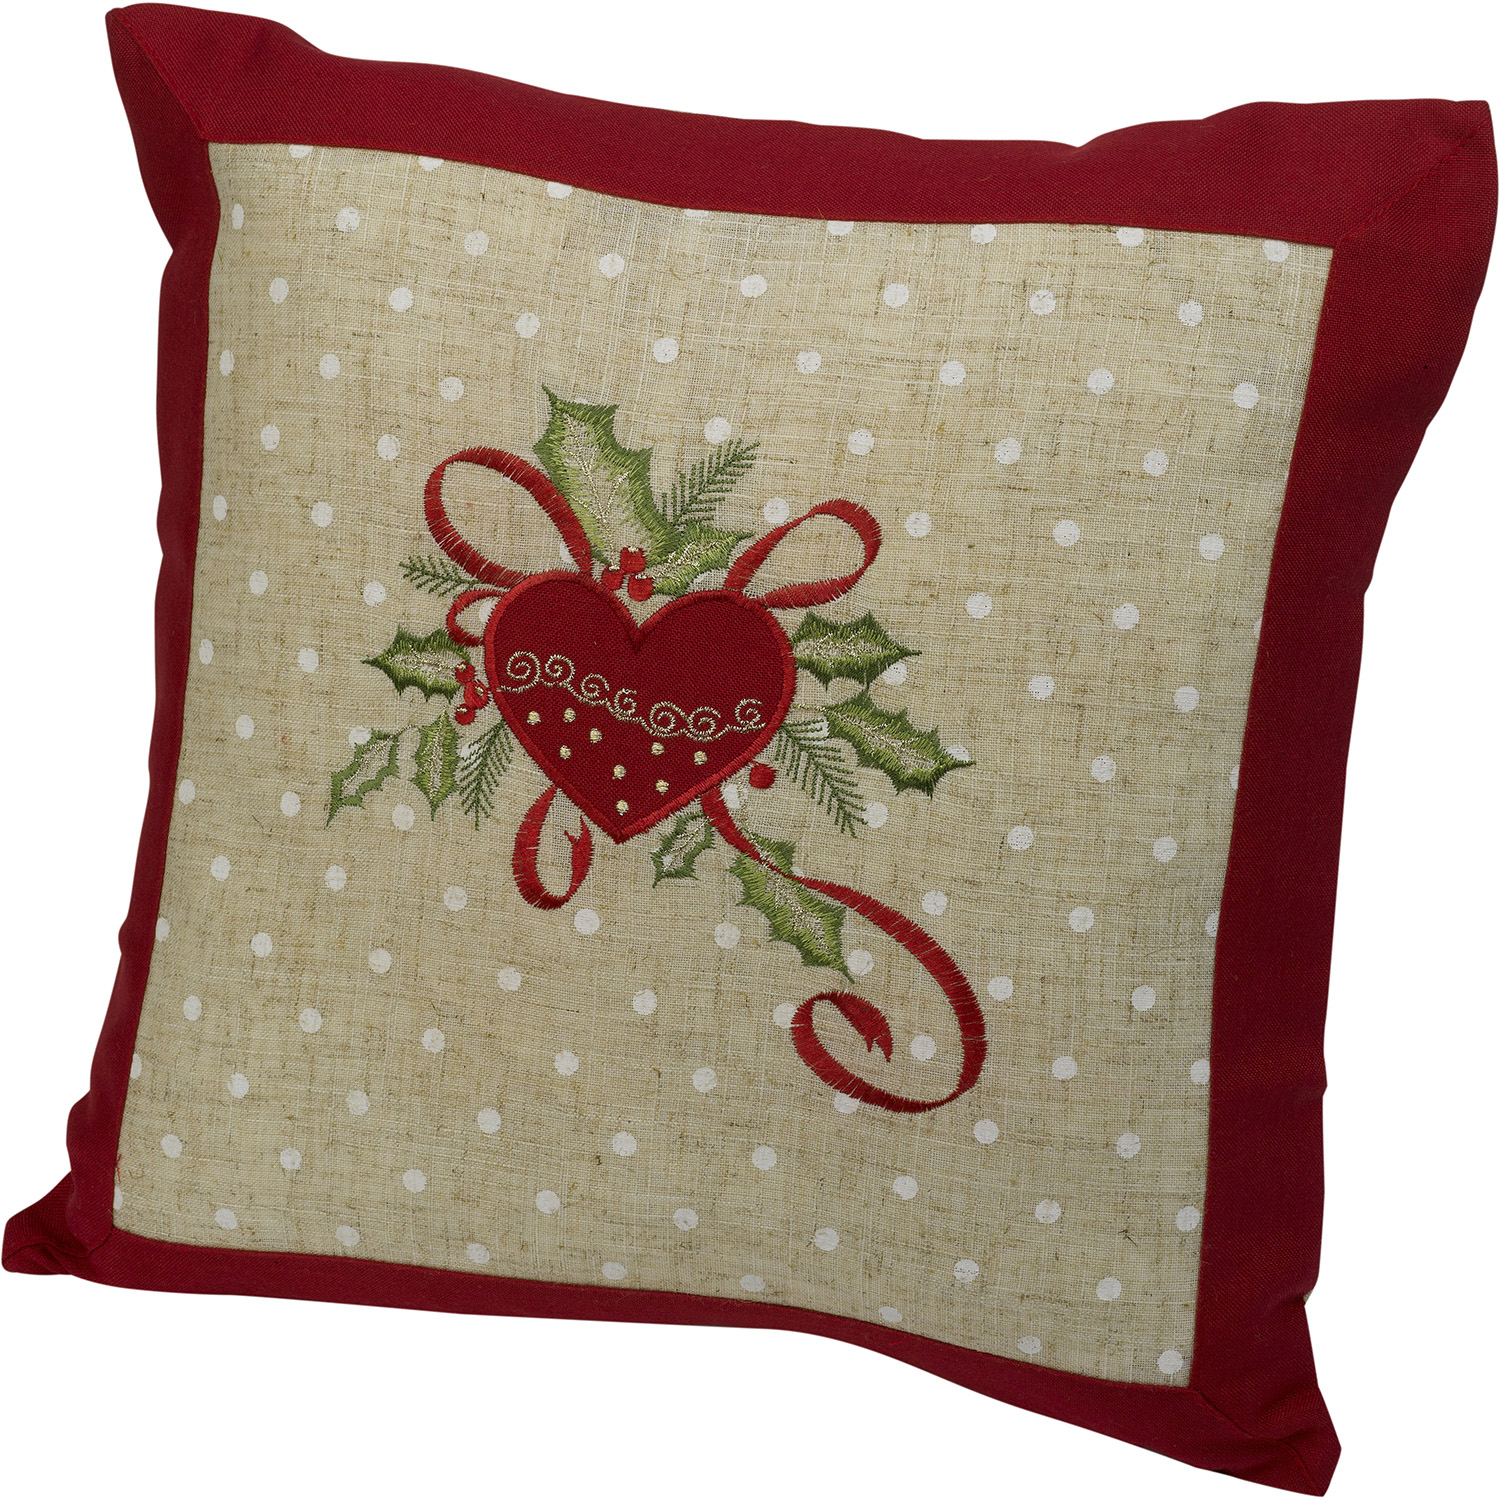 Find great deals on eBay for embroidered cushion cover. Shop with confidence.